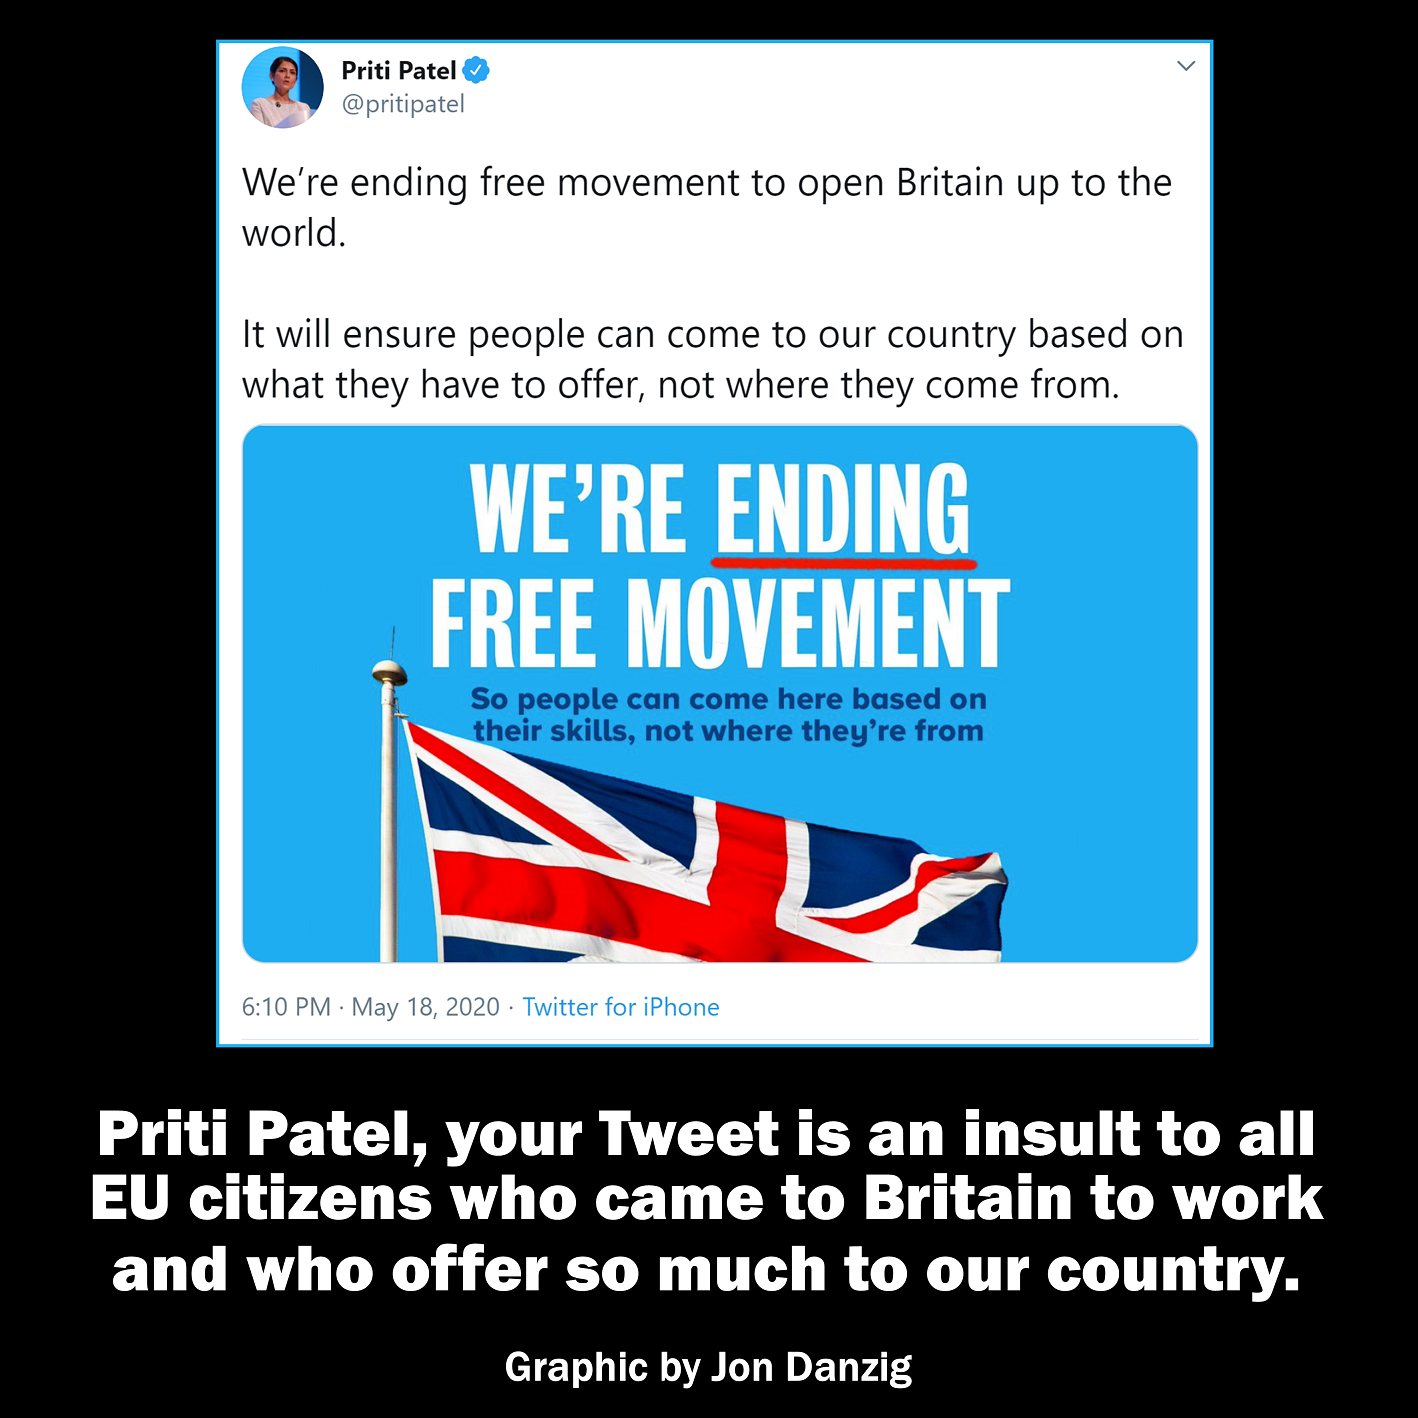 An insult to all EU citizens in Britain